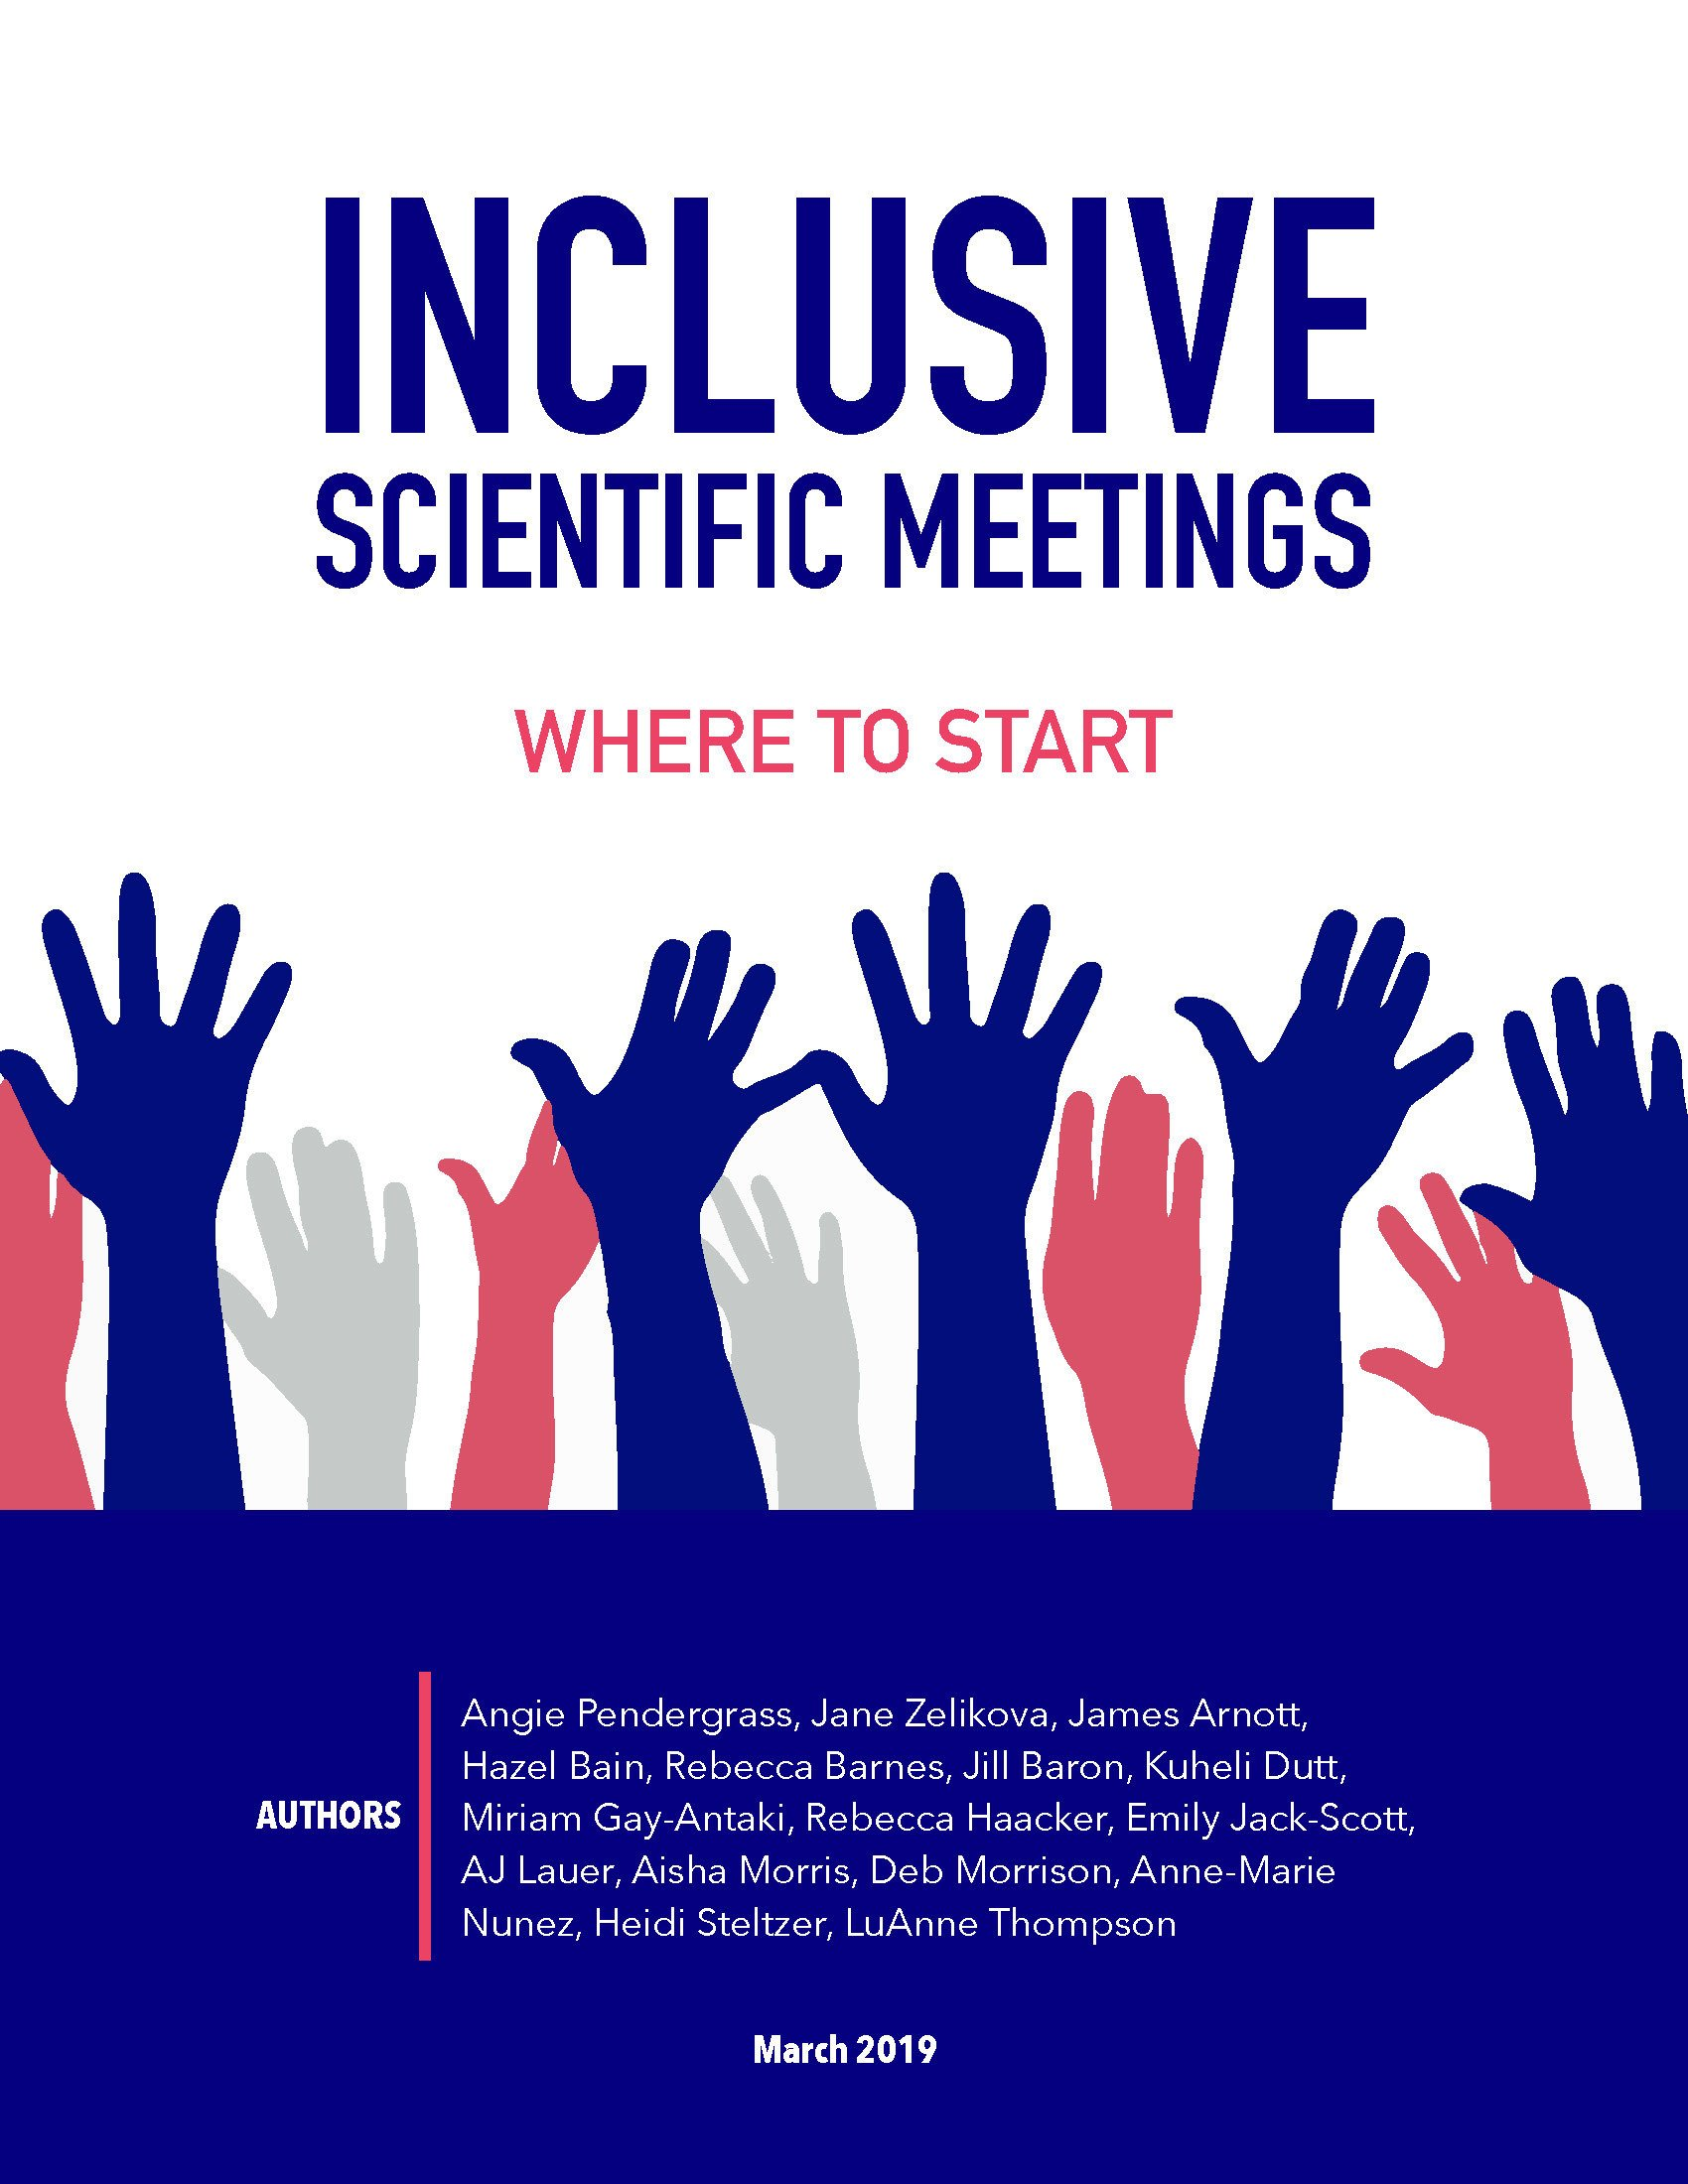 Guideline to Inclusive Scientific Meetings